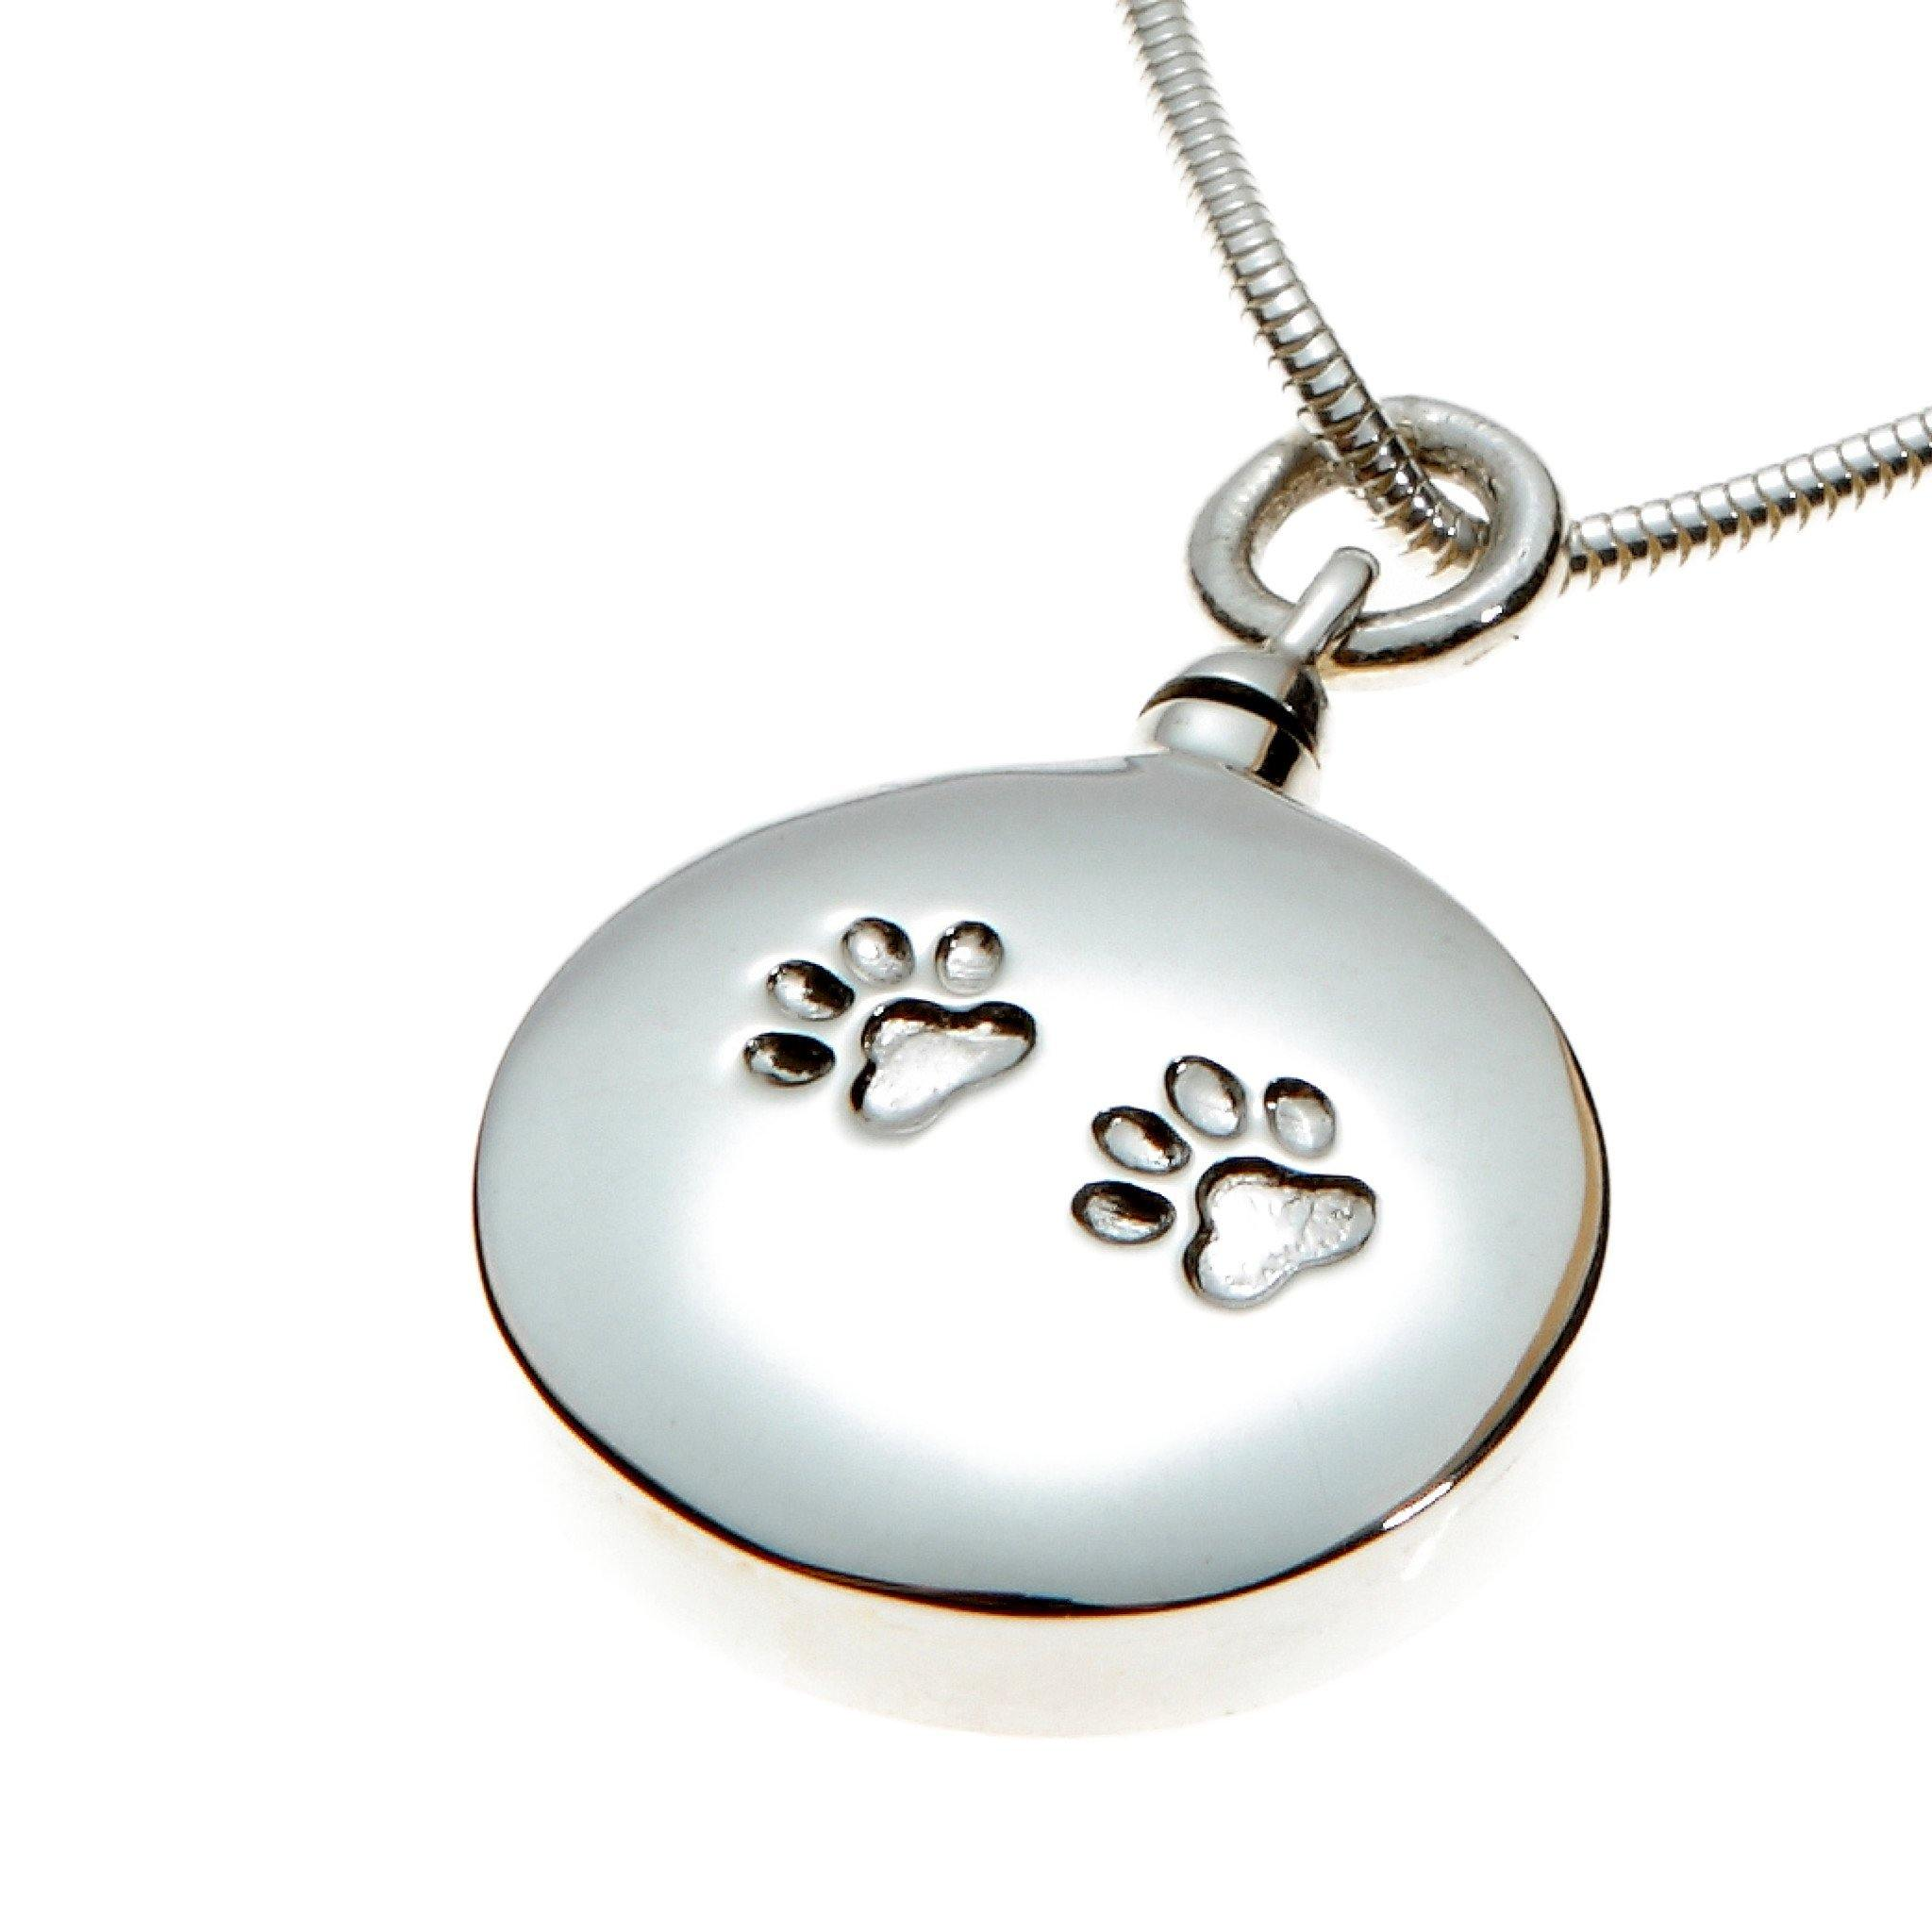 Mayfair Emb Paw Round Cremation Ashes Pendant 925 Silver - Urns UK